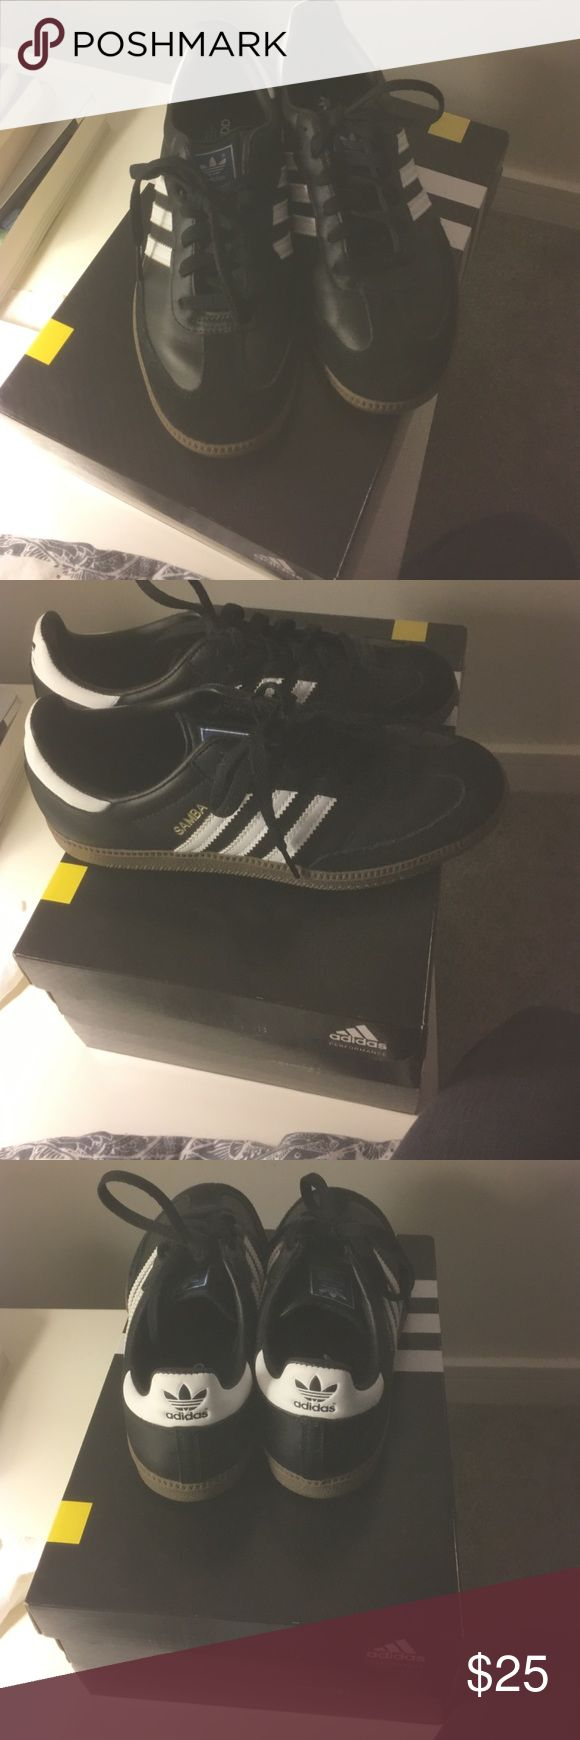 Adidas Samba Classic Shoes Original boxing Adidas Sambas Classic. Suede lining. Never worn. About 6.5/7 in Women's sizing Adidas Shoes Sneakers